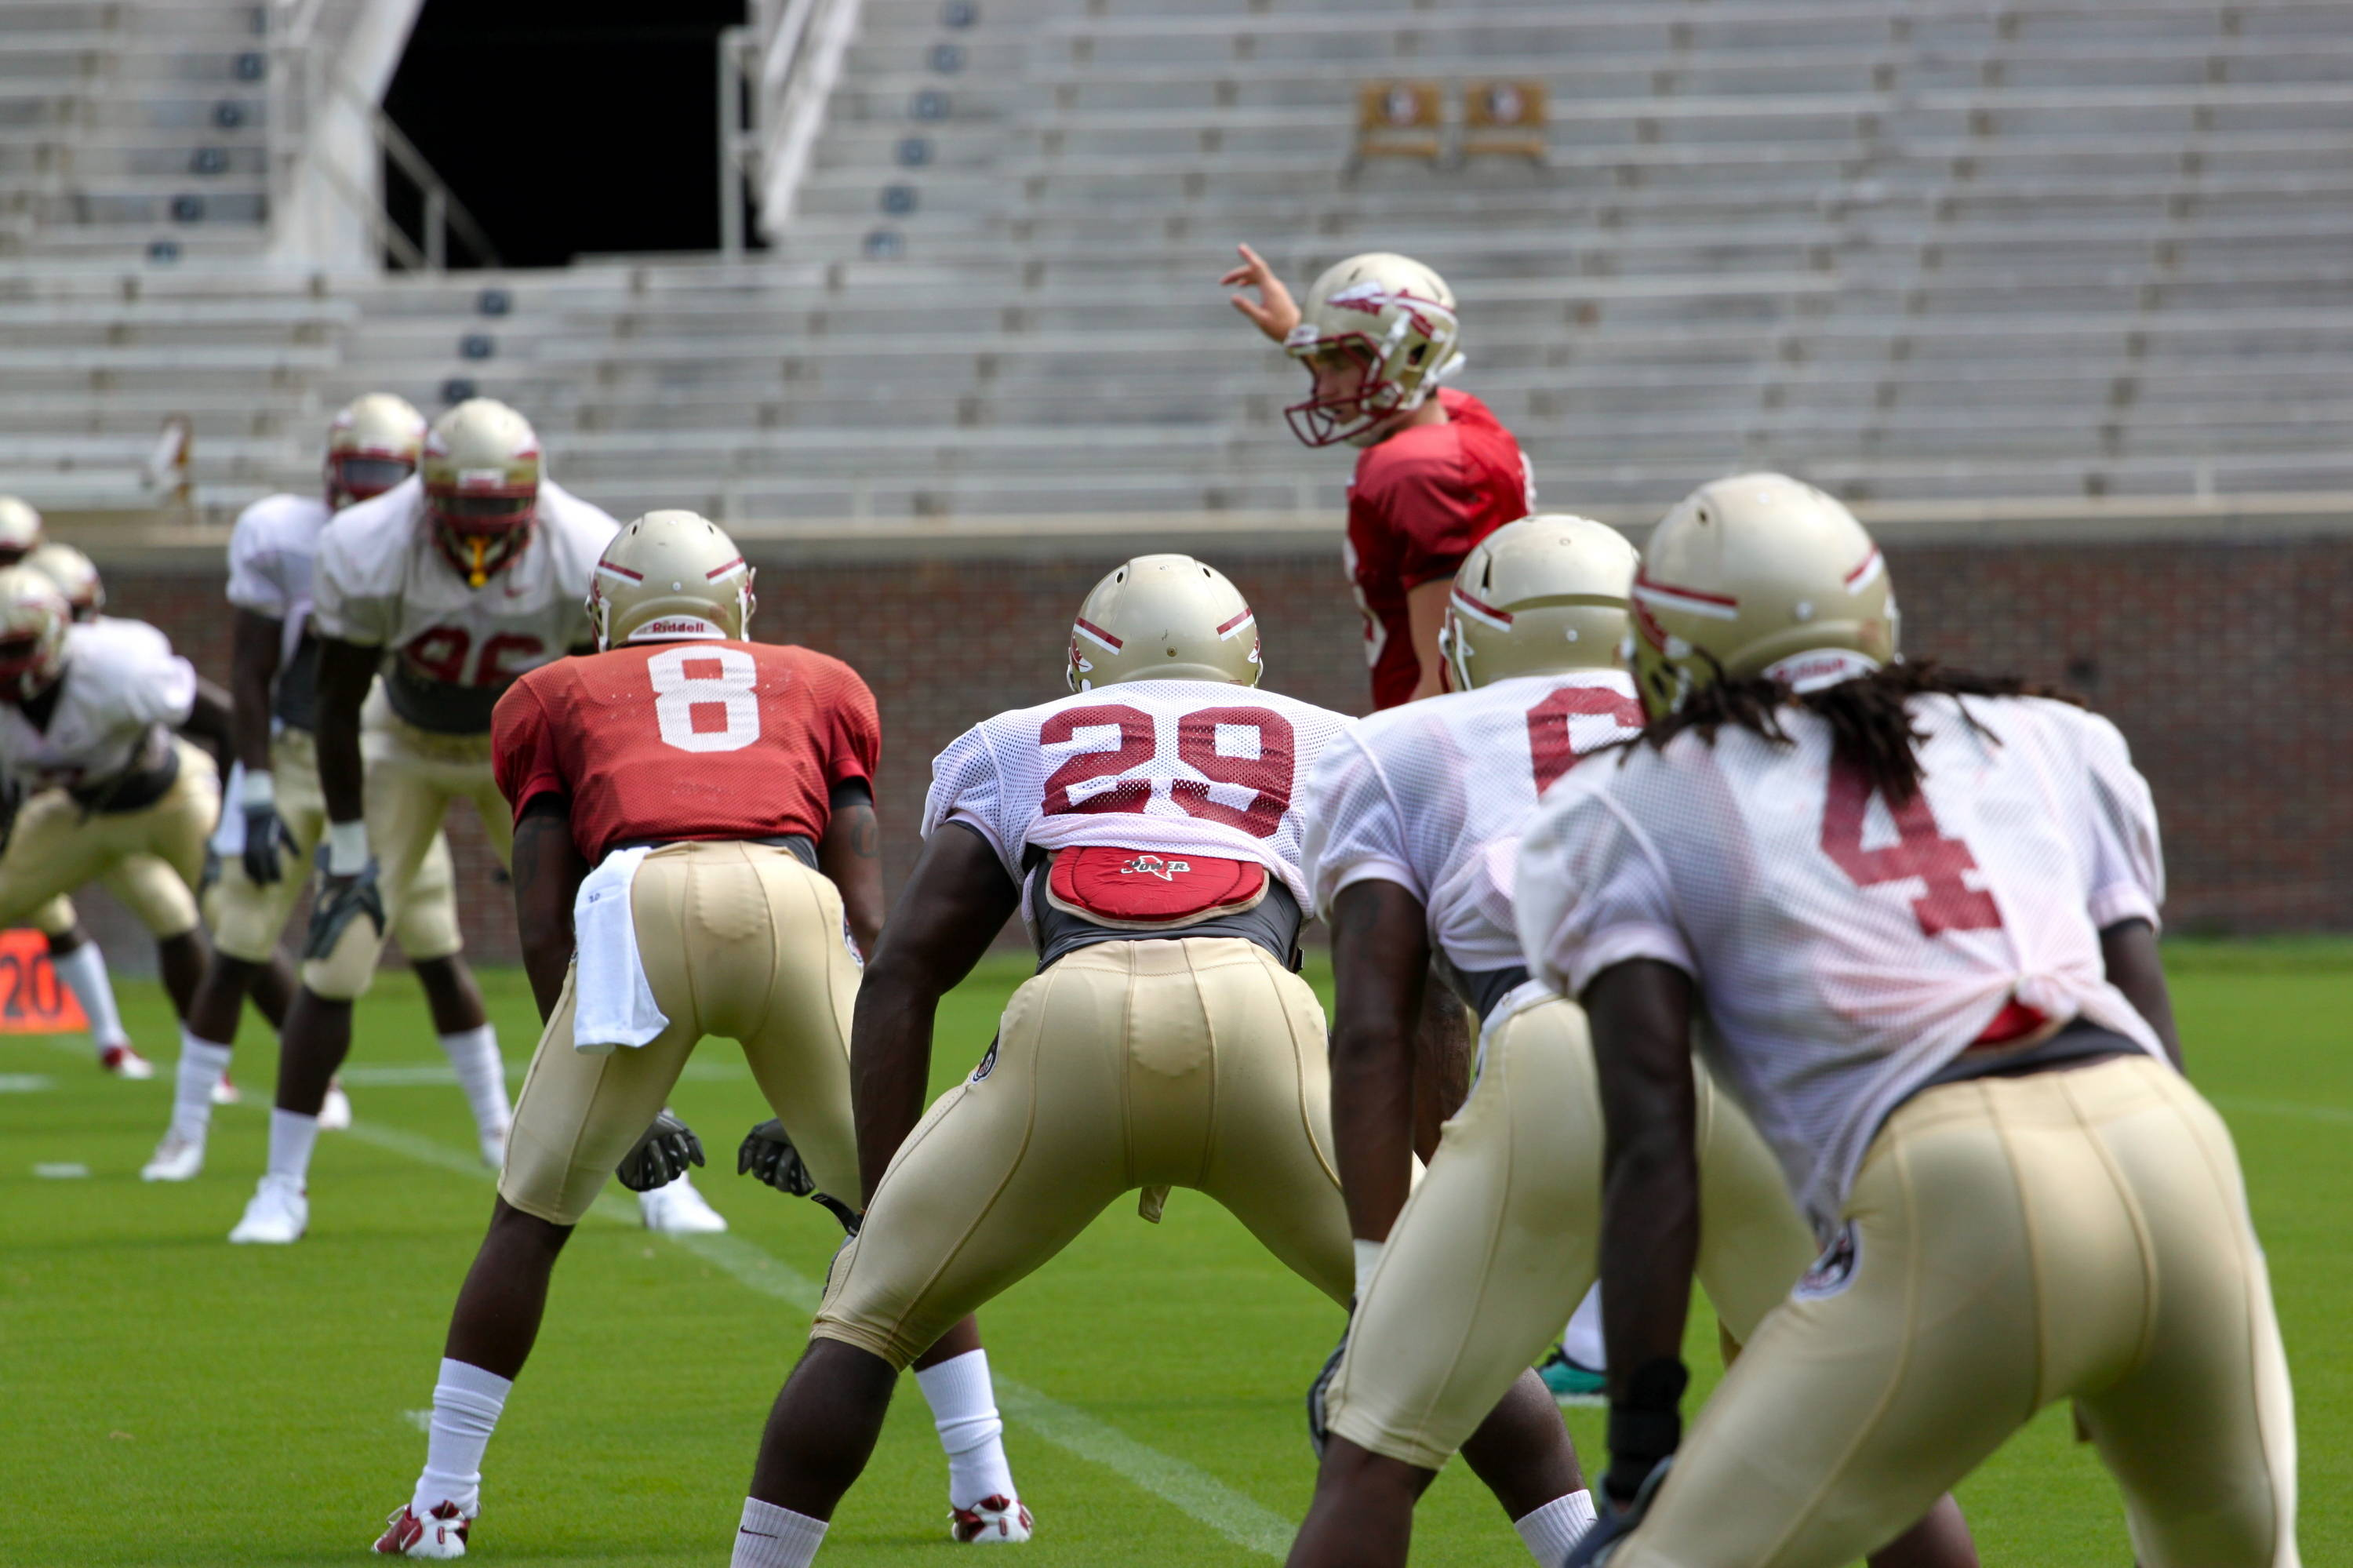 Dustin Hopkins (18) and the kickoff team